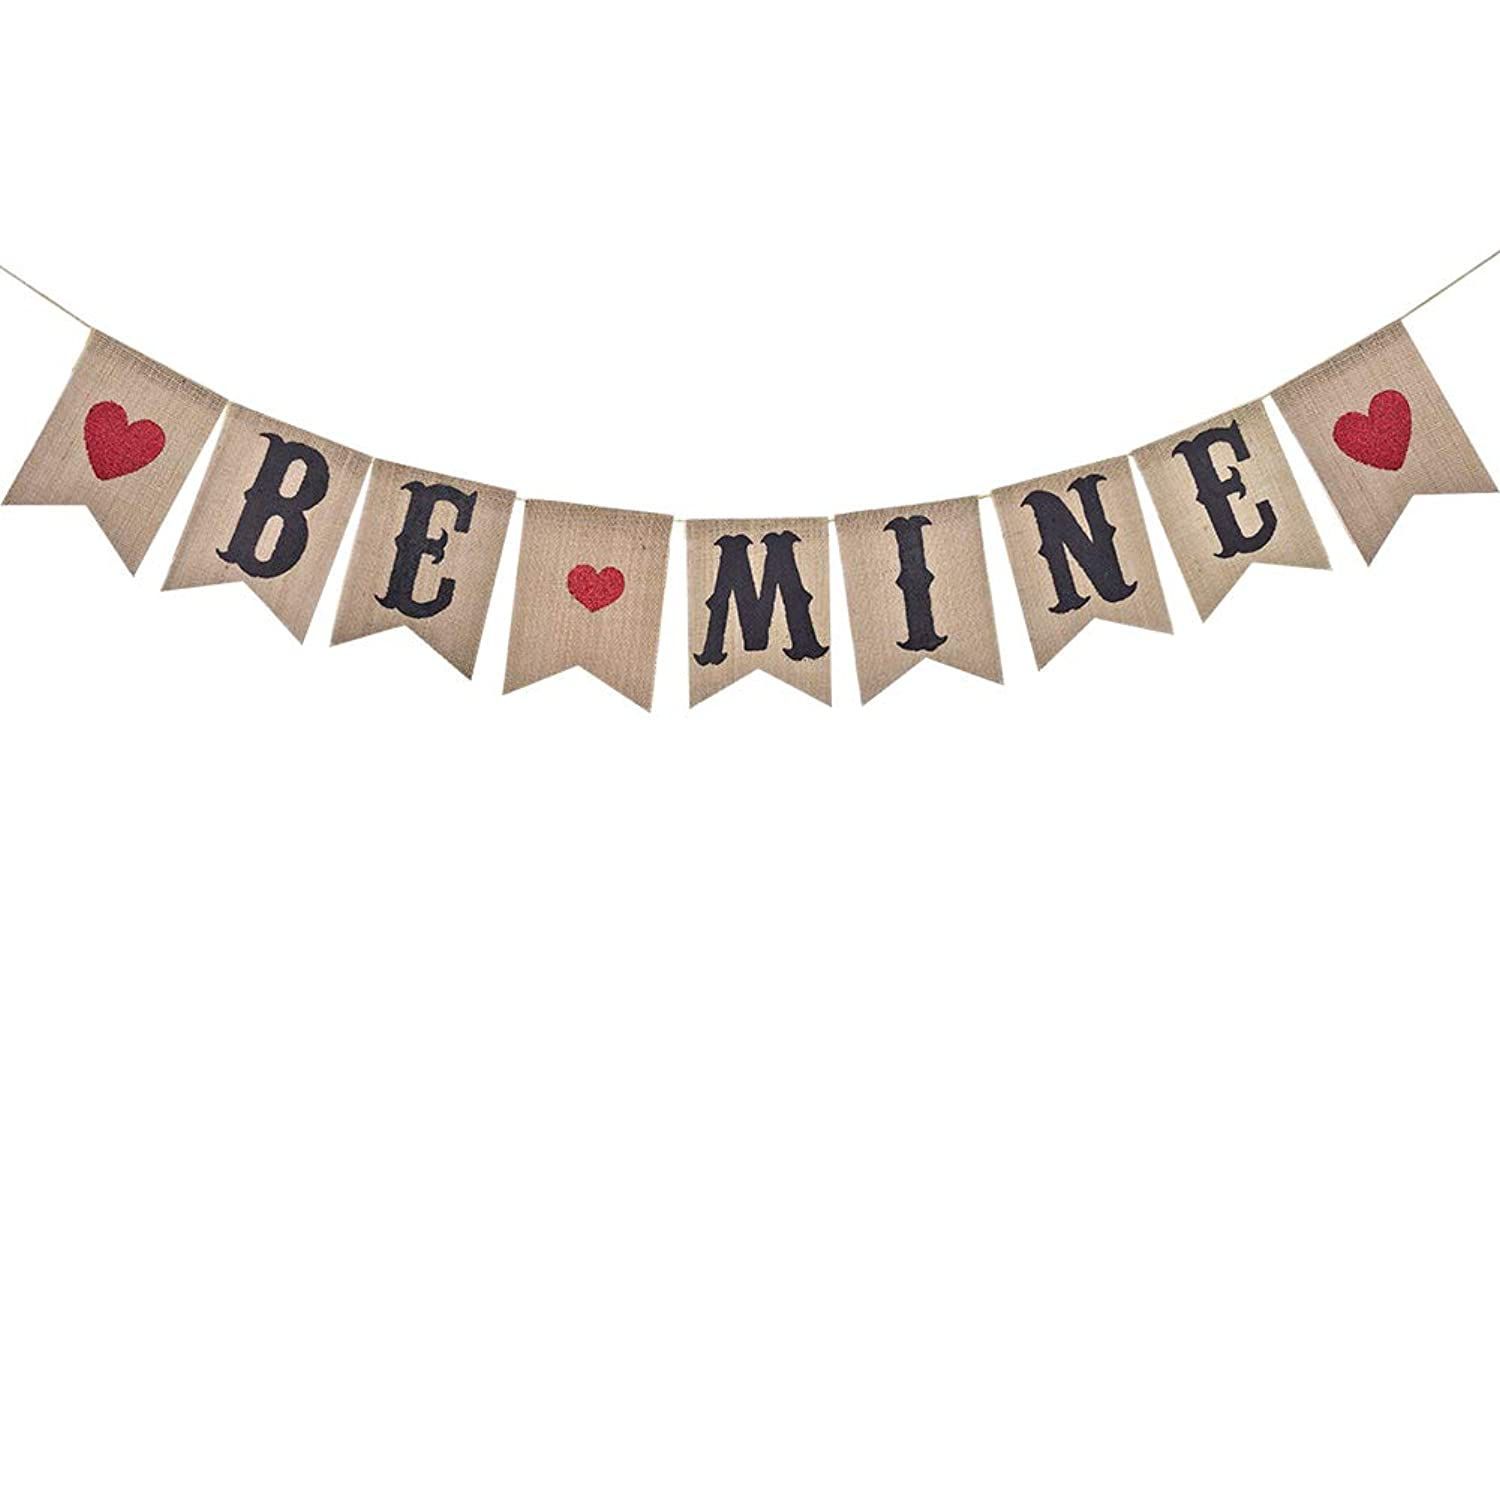 Be Mine Banner With Red Glitter Heart Valentines Day Banner For Valentine Wedding Engagement Anniversary Party Decoration Supplies